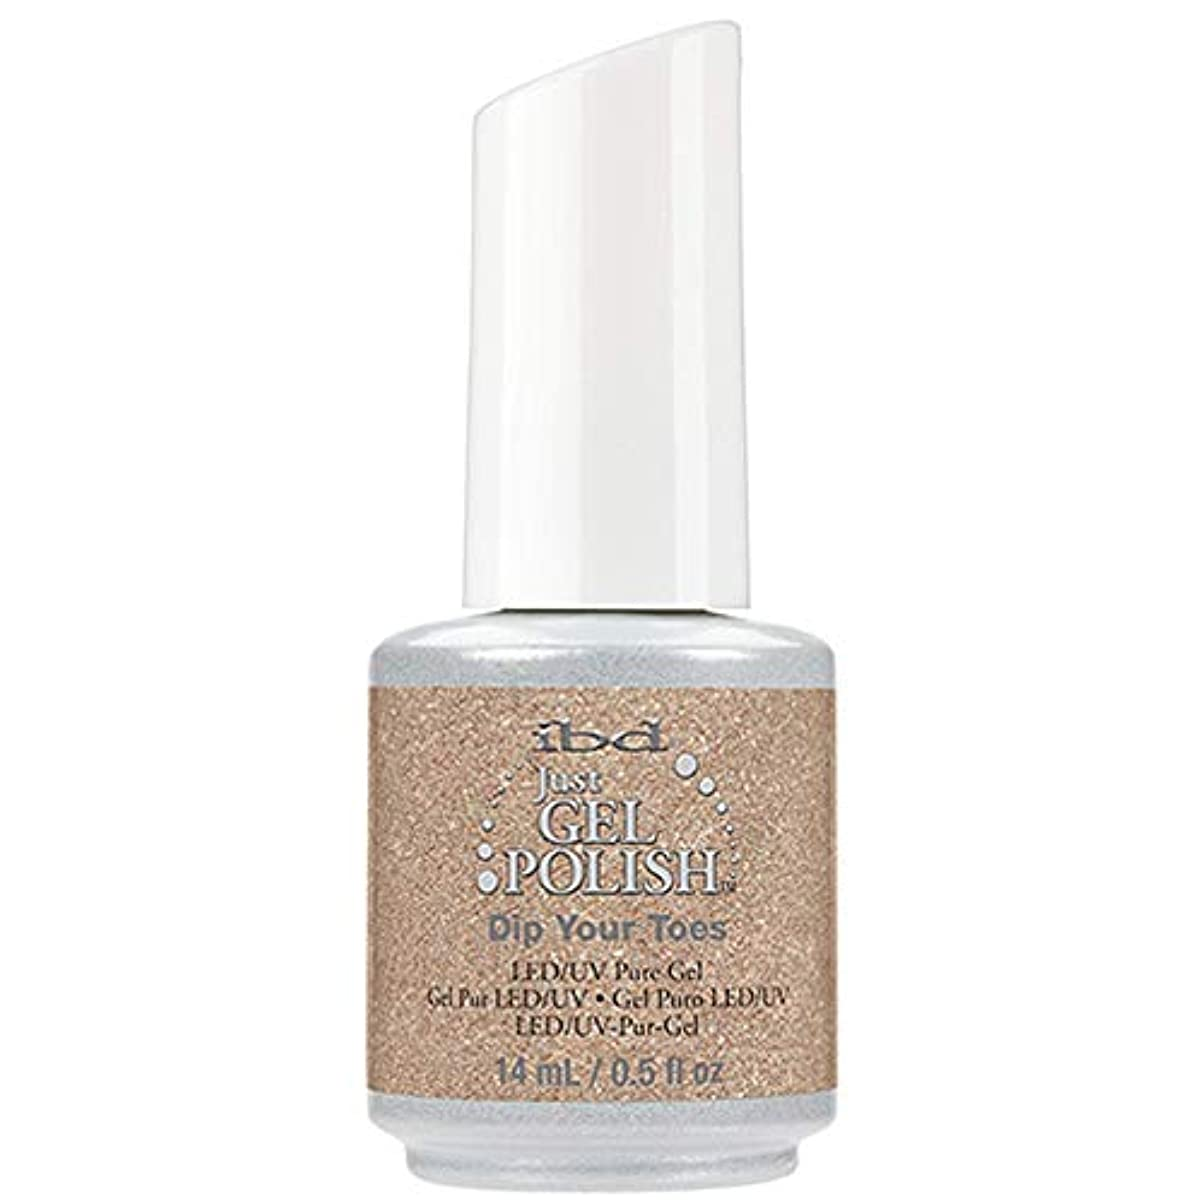 オプショナルニッケル少しibd Just Gel Nail Polish - Dip Your Toes - 14ml / 0.5oz